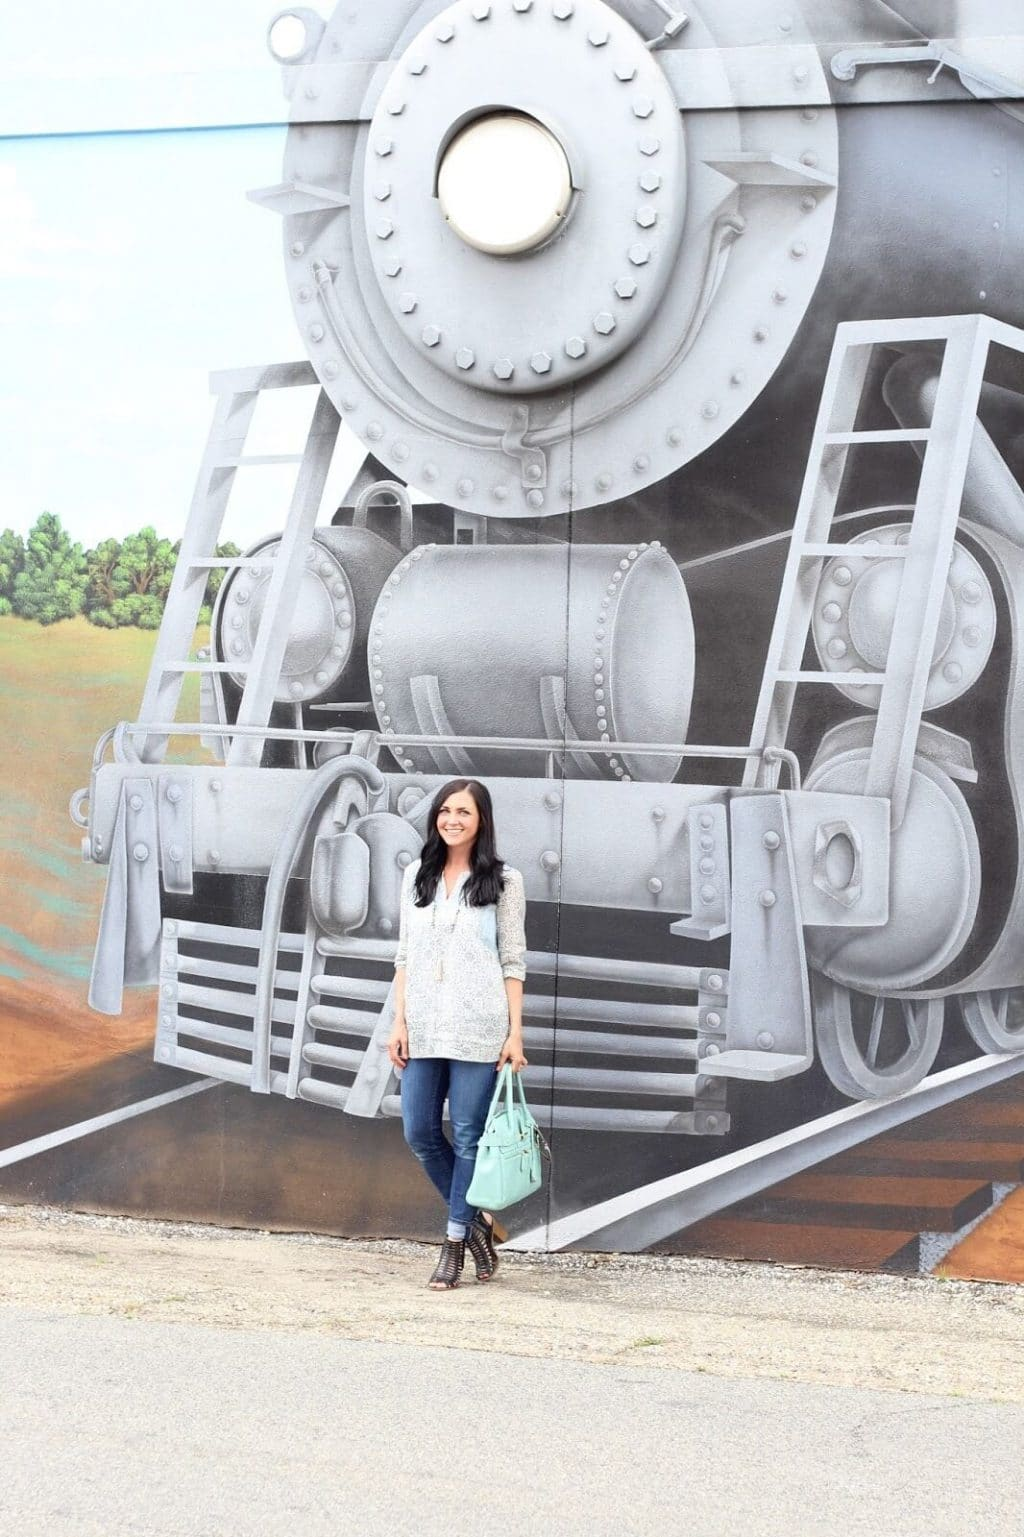 Fashion blogger, spring style, train mural